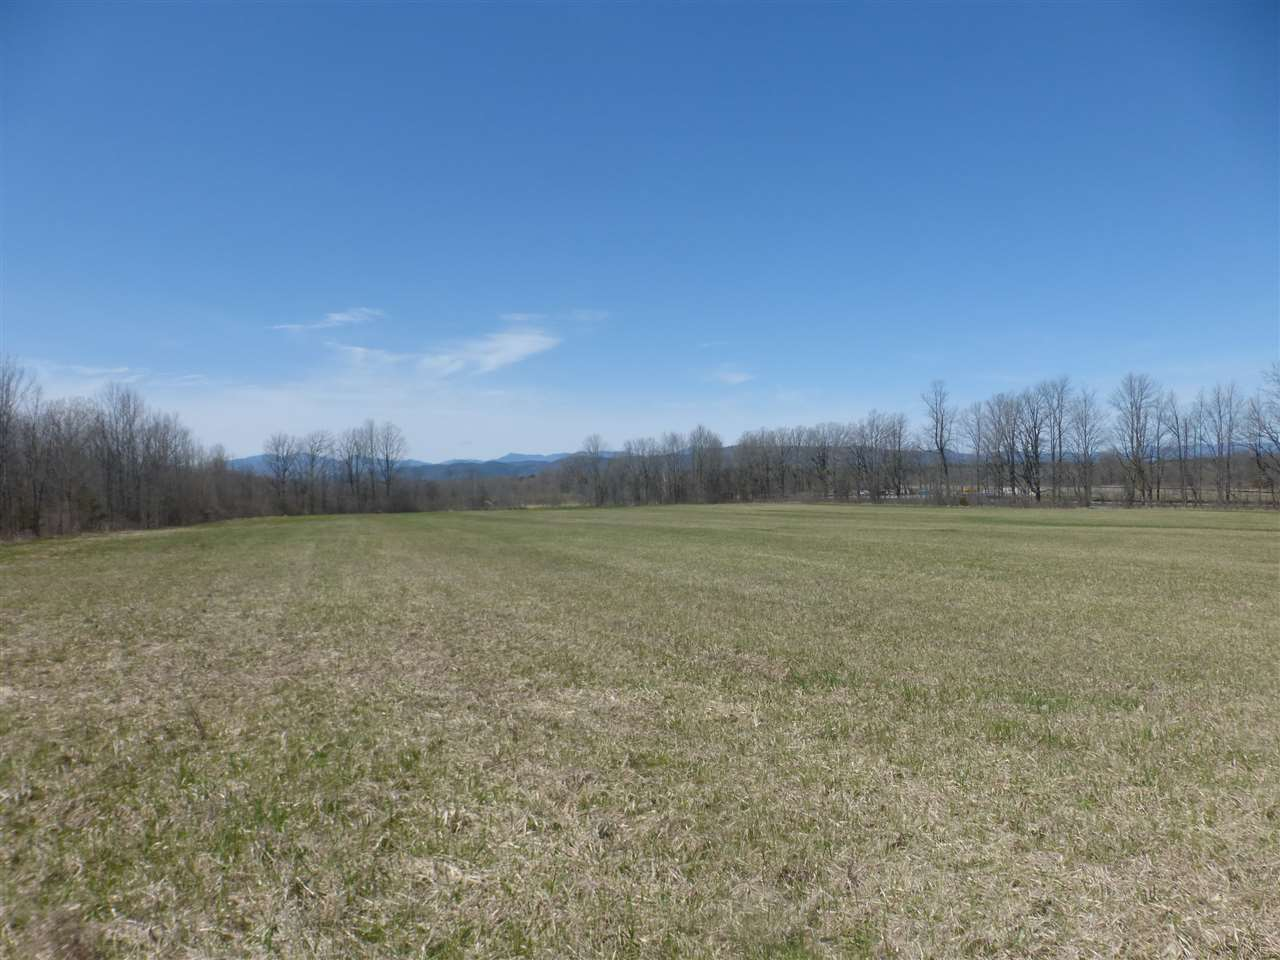 A Rare Find....Almost 65 acres of open & wooded land with 1,000 ft of Rte 7 frontage in Ferrisburgh with spectacular Adirondack views.  Located across from the renowned Rokeby Museum and bordered to the south by conserved land this parcel has endless possibilities.  There is also an easement for right of way from Greenbush Rd.  2 beautiful meadows, this land could be a beautiful gentleman's farm or has good subdivision potential.  Forested land is currently in the land use program.  Conveniently located, 12 miles to Shelburne, 16 miles to Burlington & 16 miles to Middlebury.